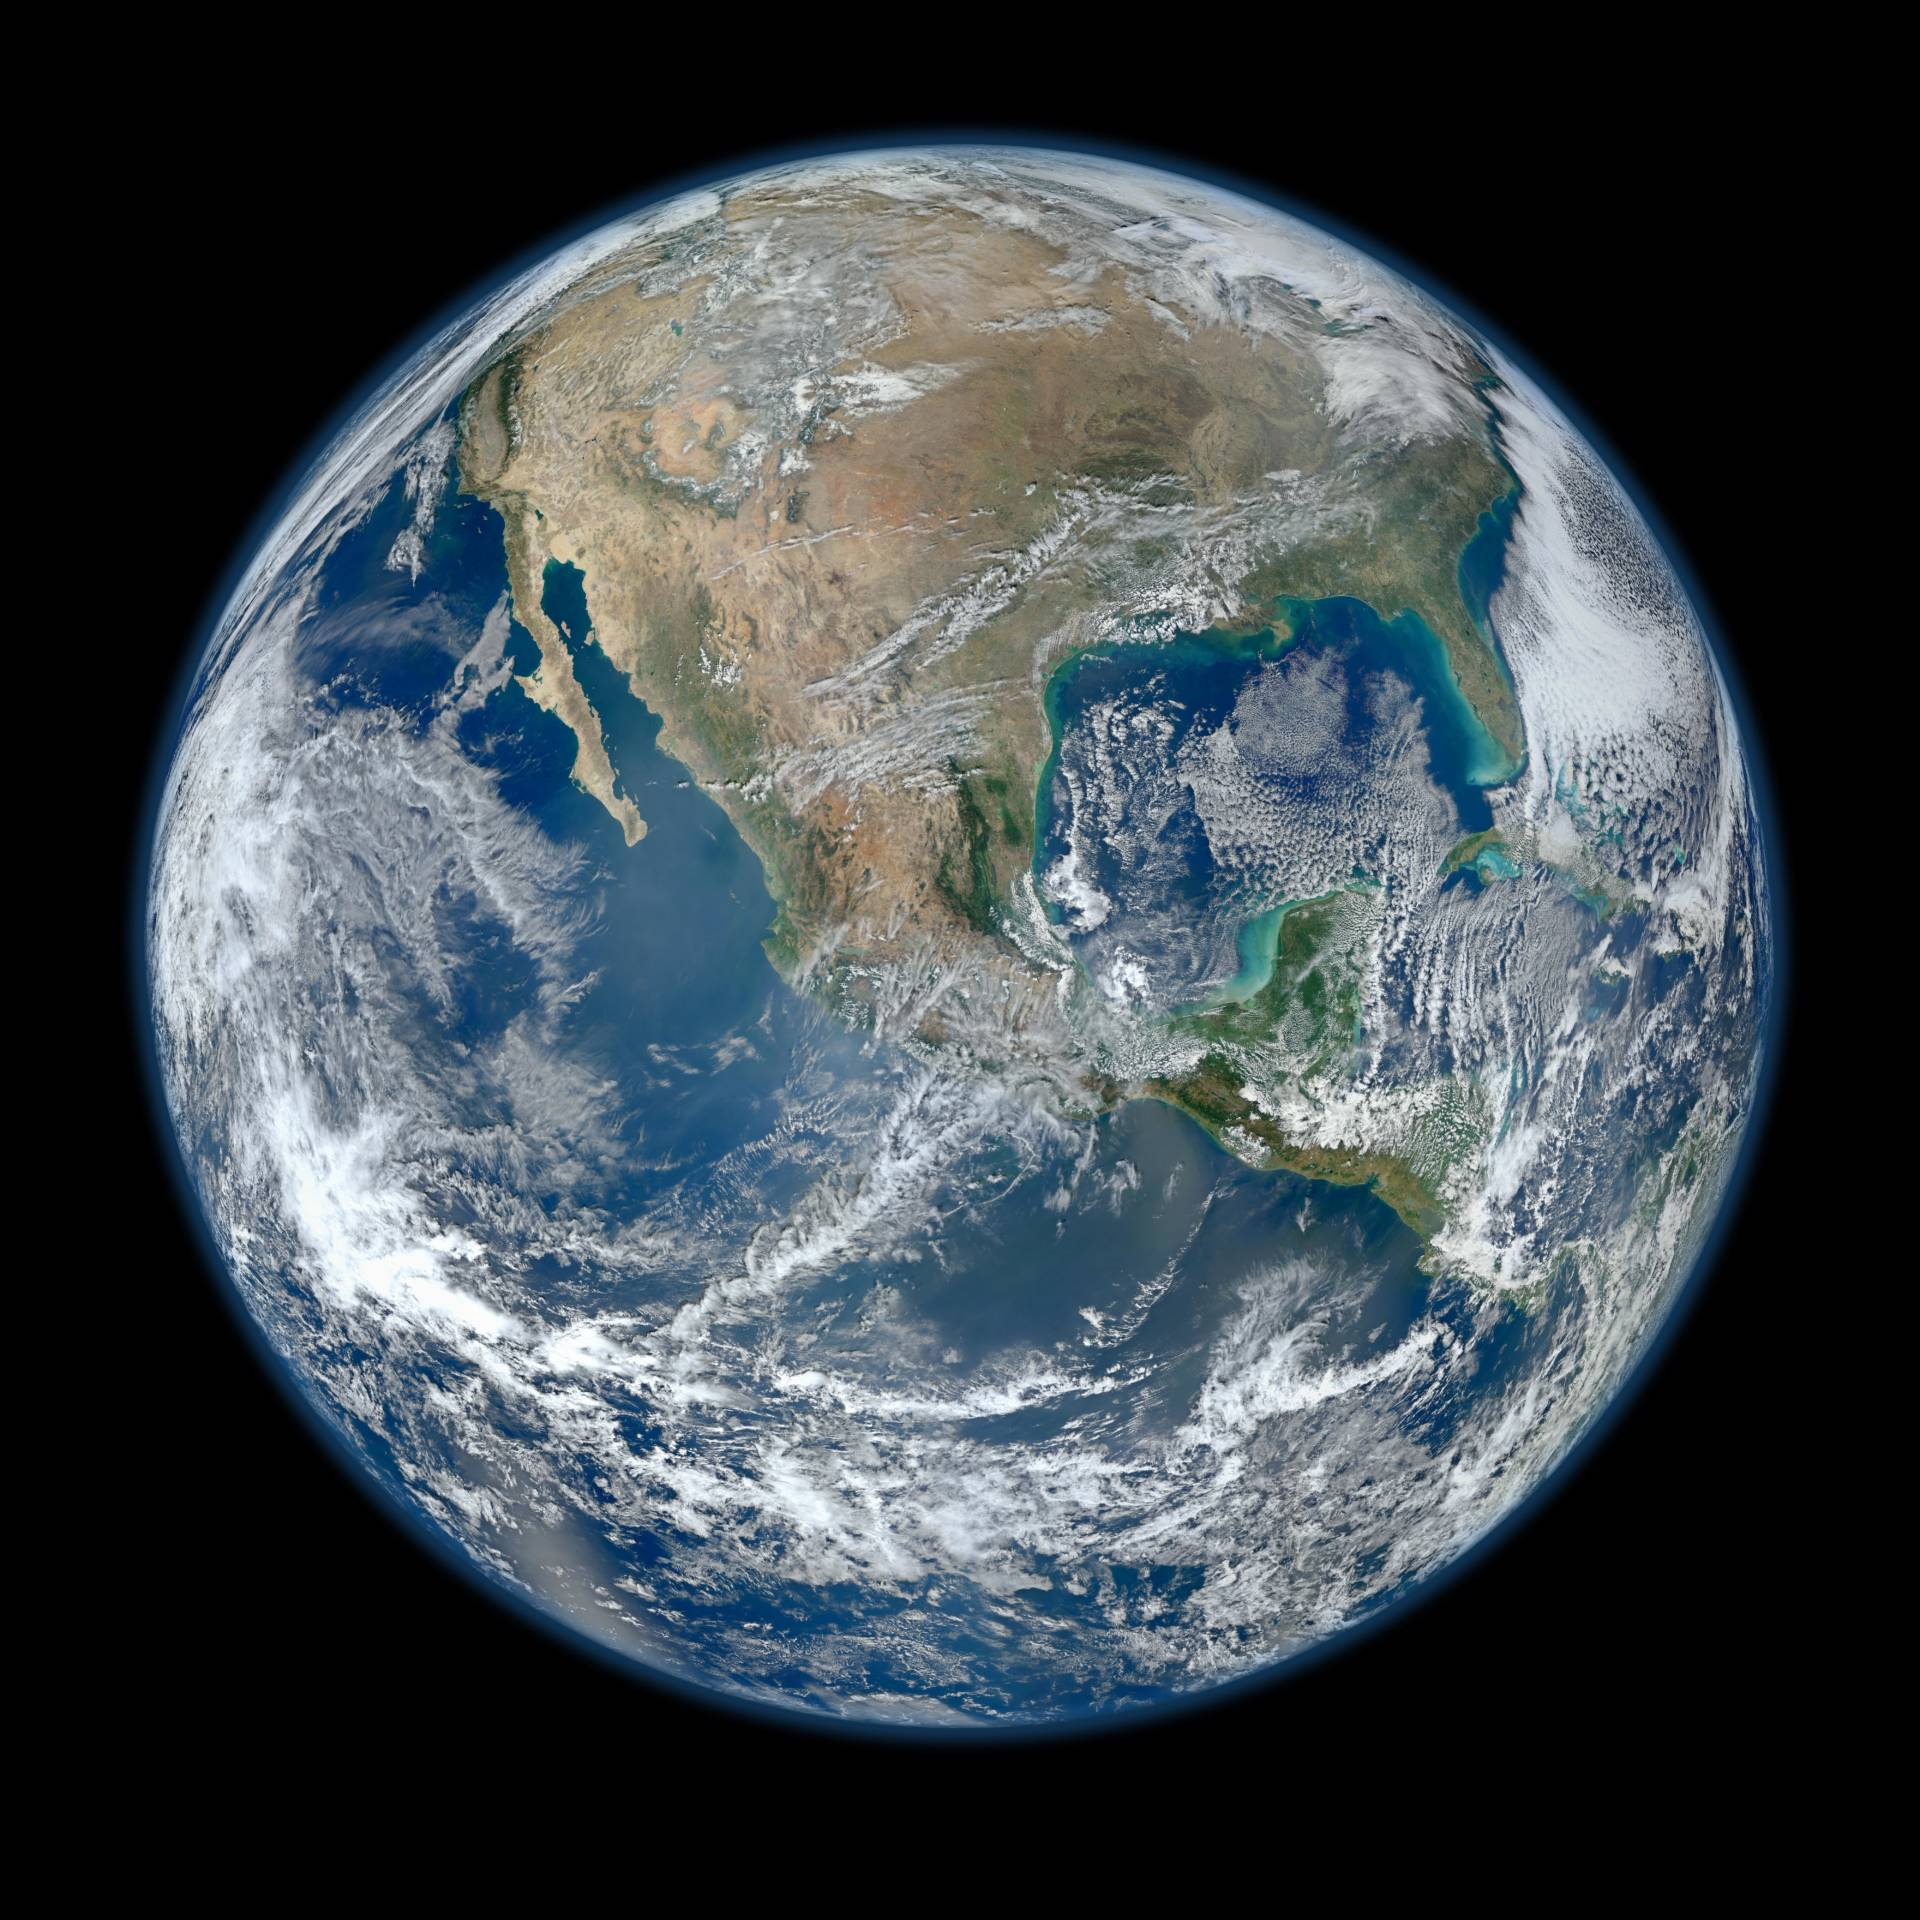 Behold one of the more stunningly detailed images of the Earth yet created. This Blue Marble Earth montage, created from photographs taken by the VIIRS instrument on board the Suomi NPP satellite, shows many stunning details of our home planet. NASA